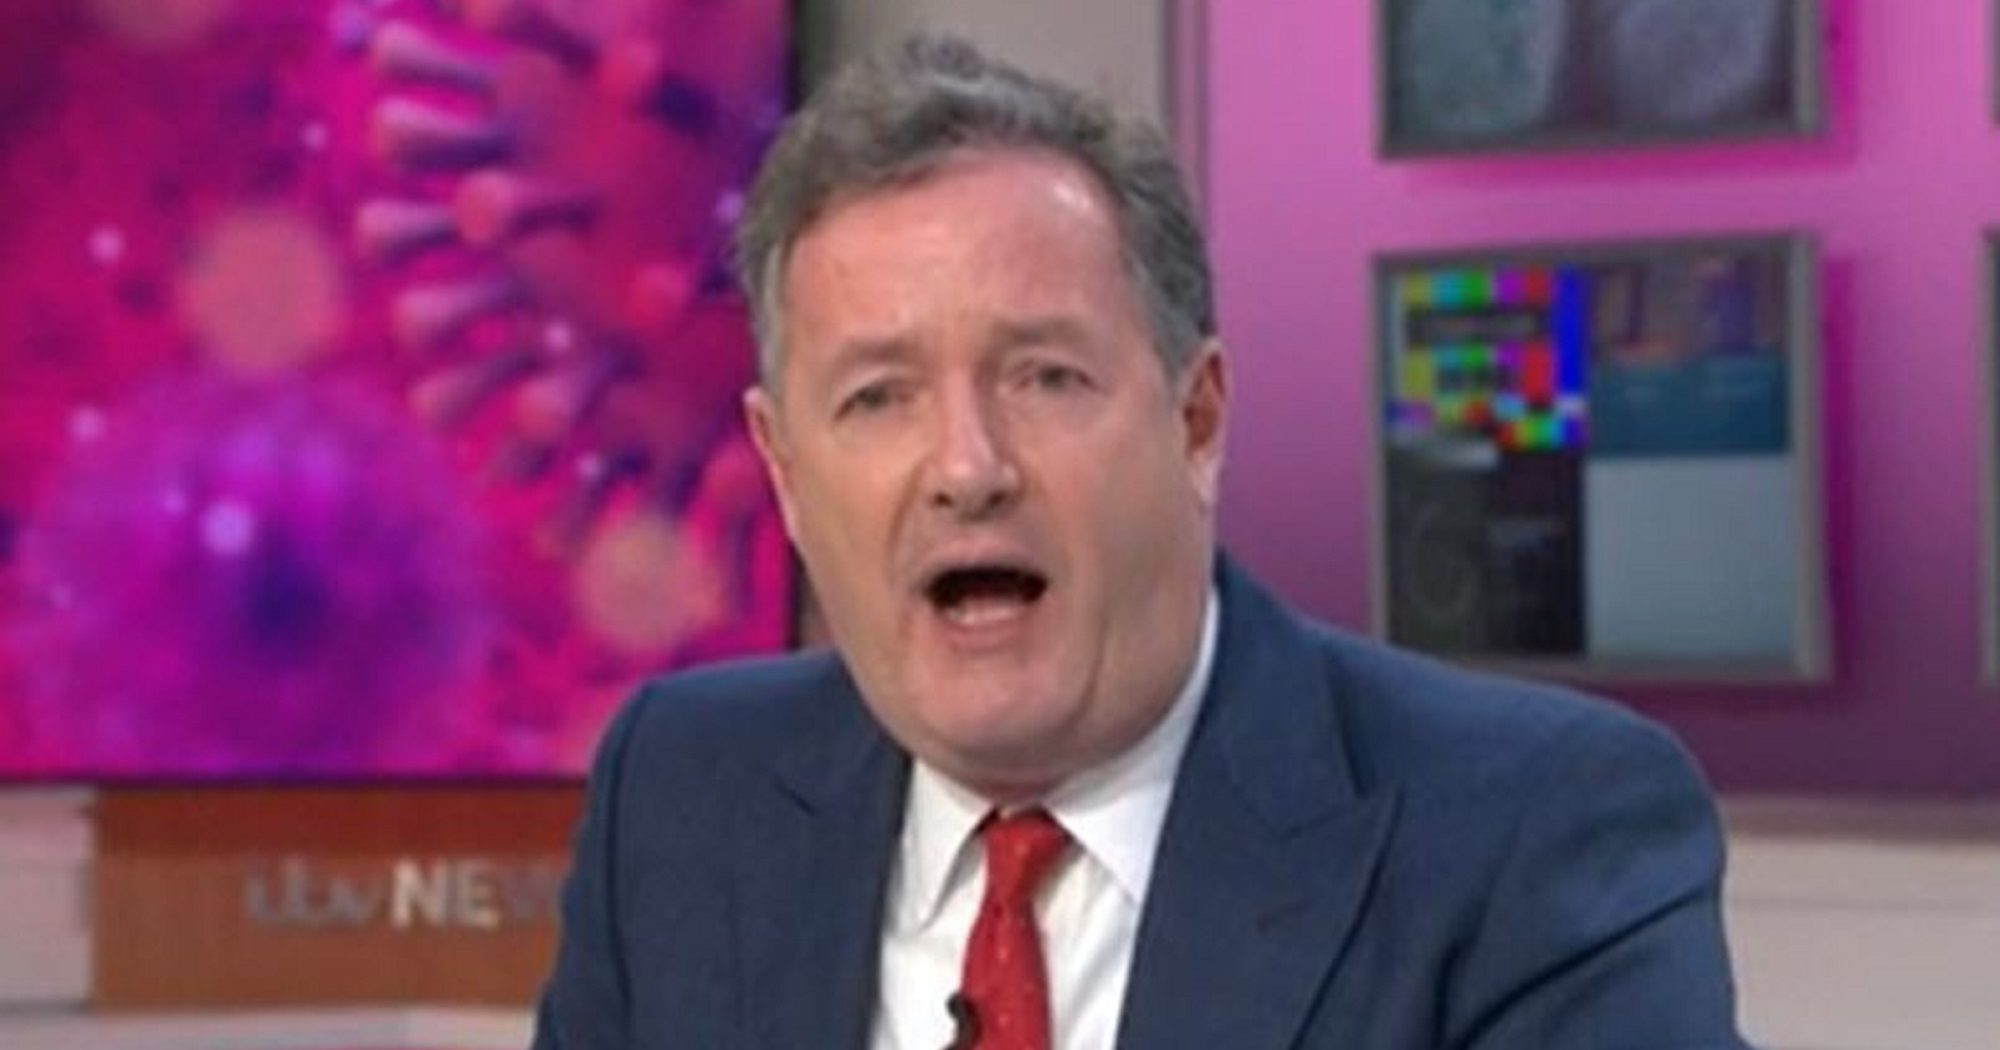 Piers Morgan blasts 'pampered' Prince Harry over coronavirus comments